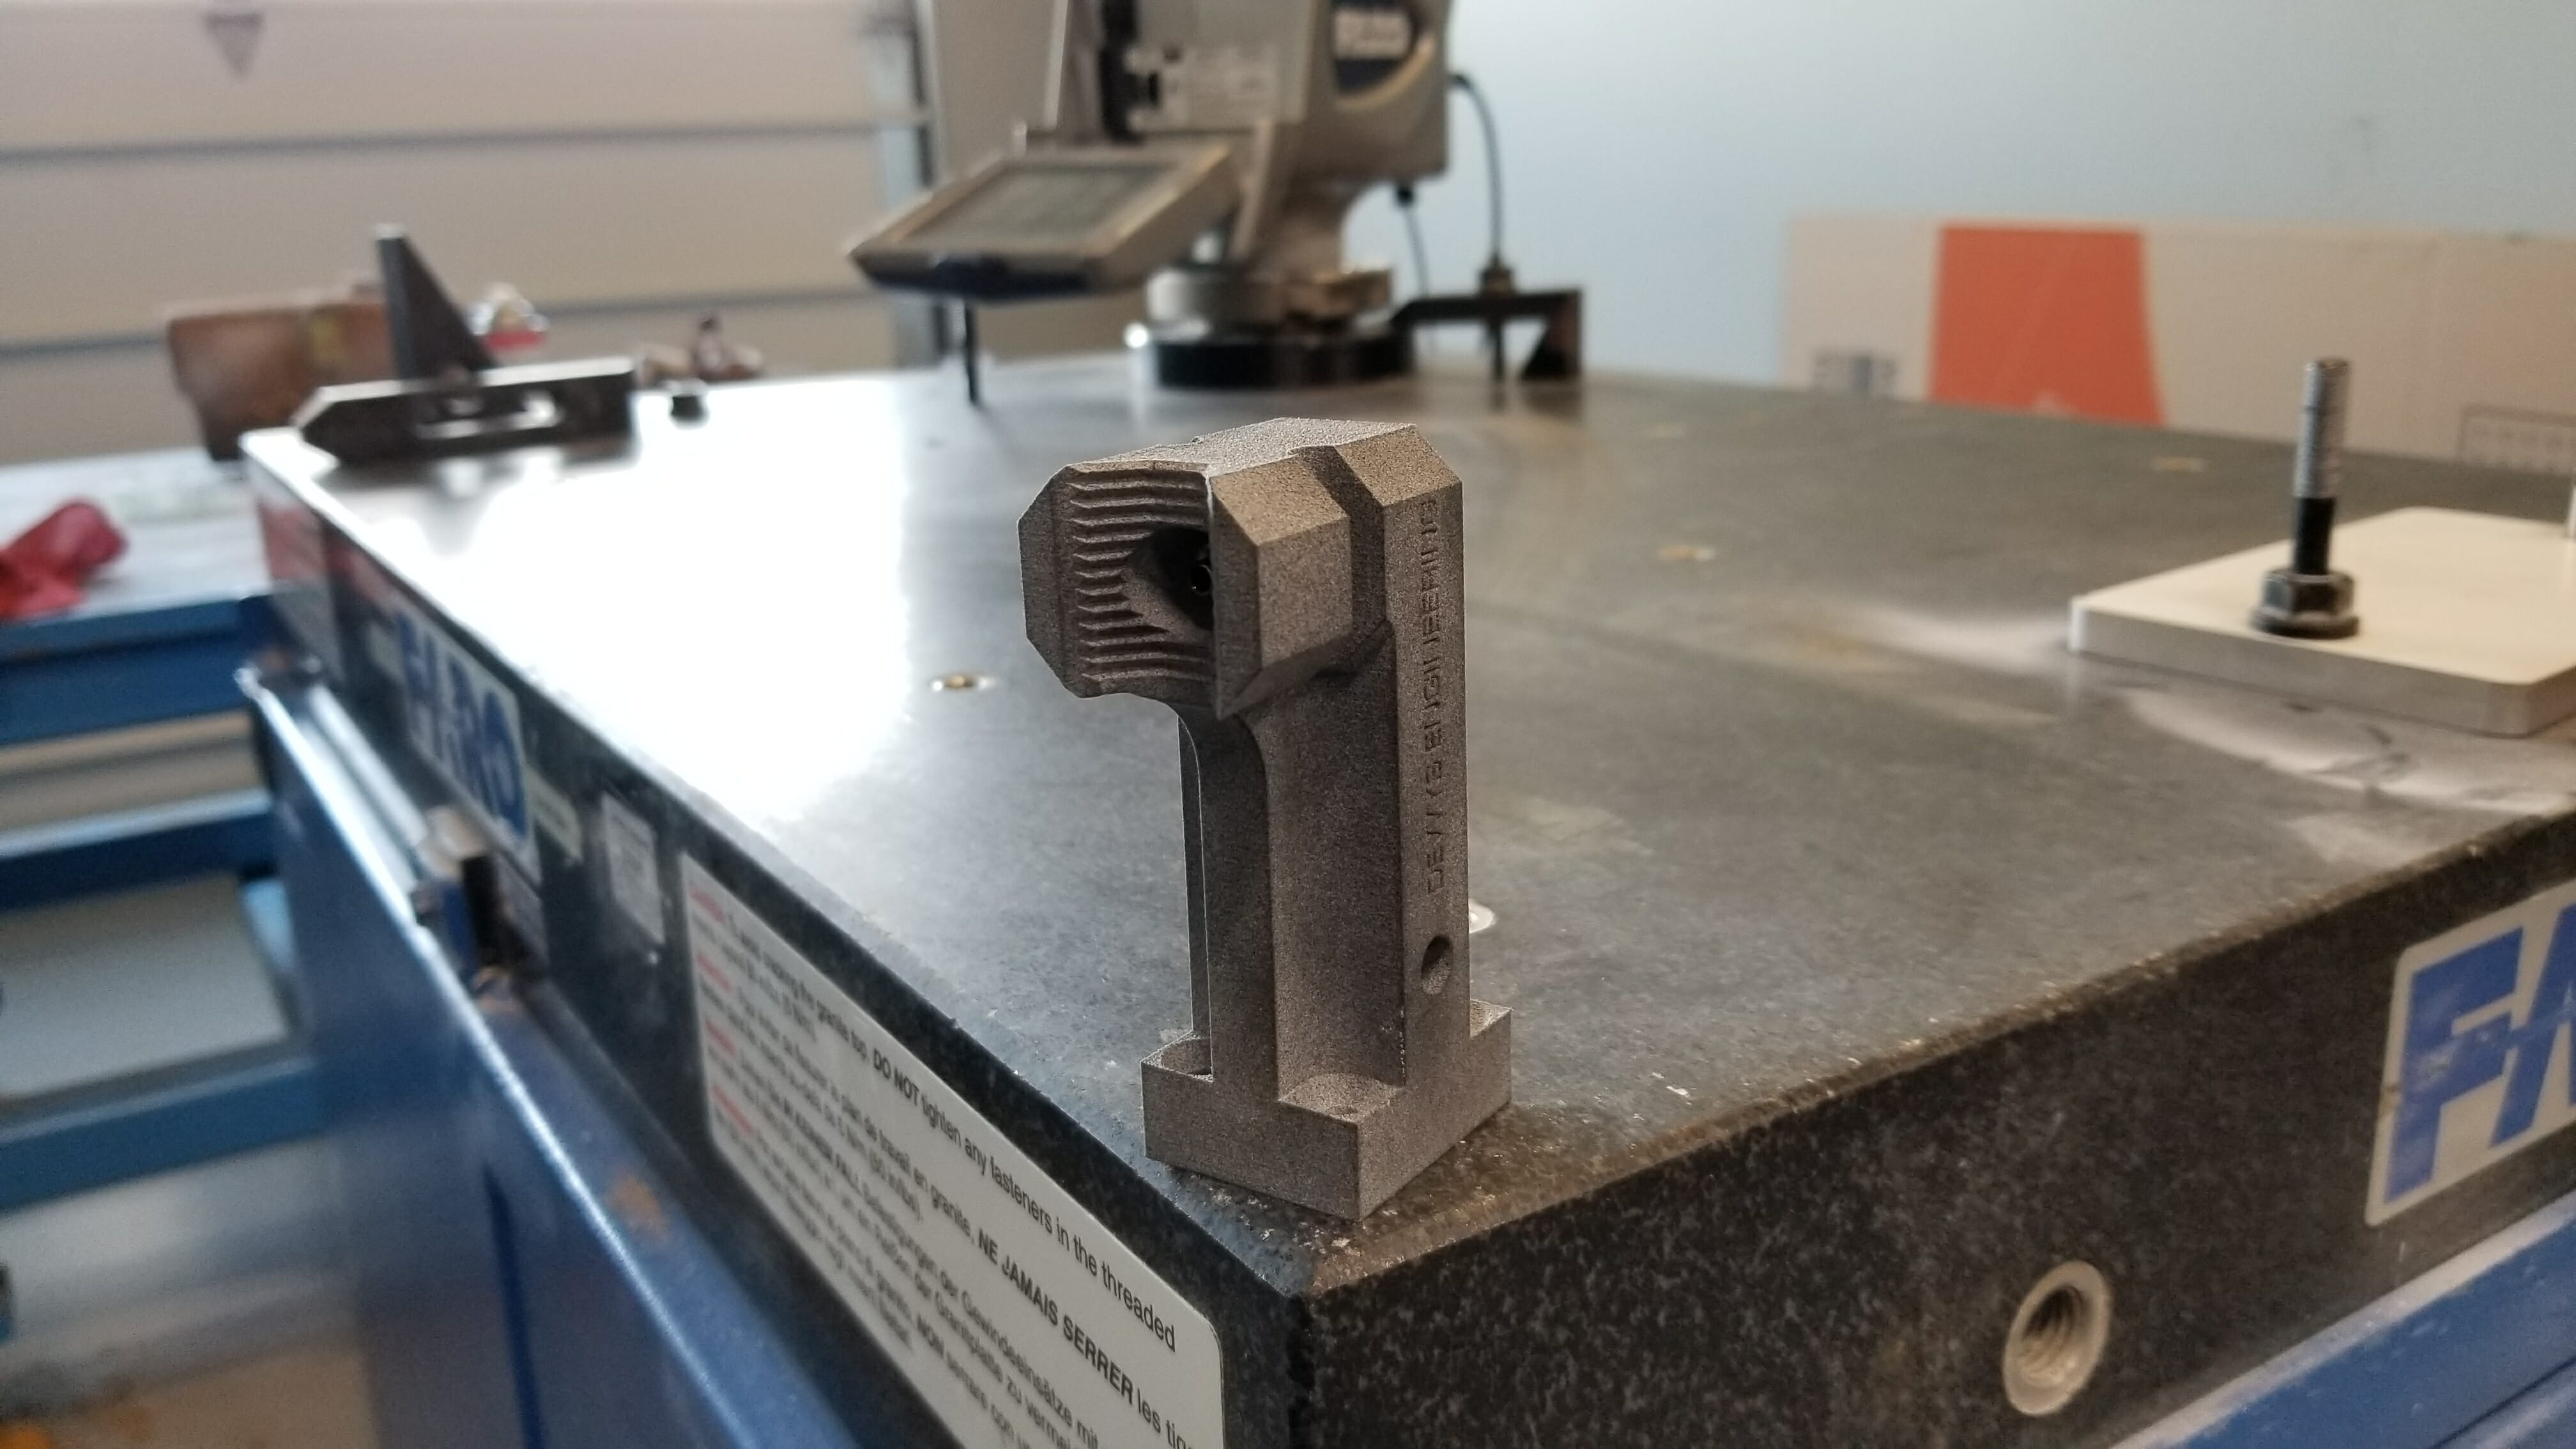 3D Printed part accuracy - Replacement Part for industrial equipment